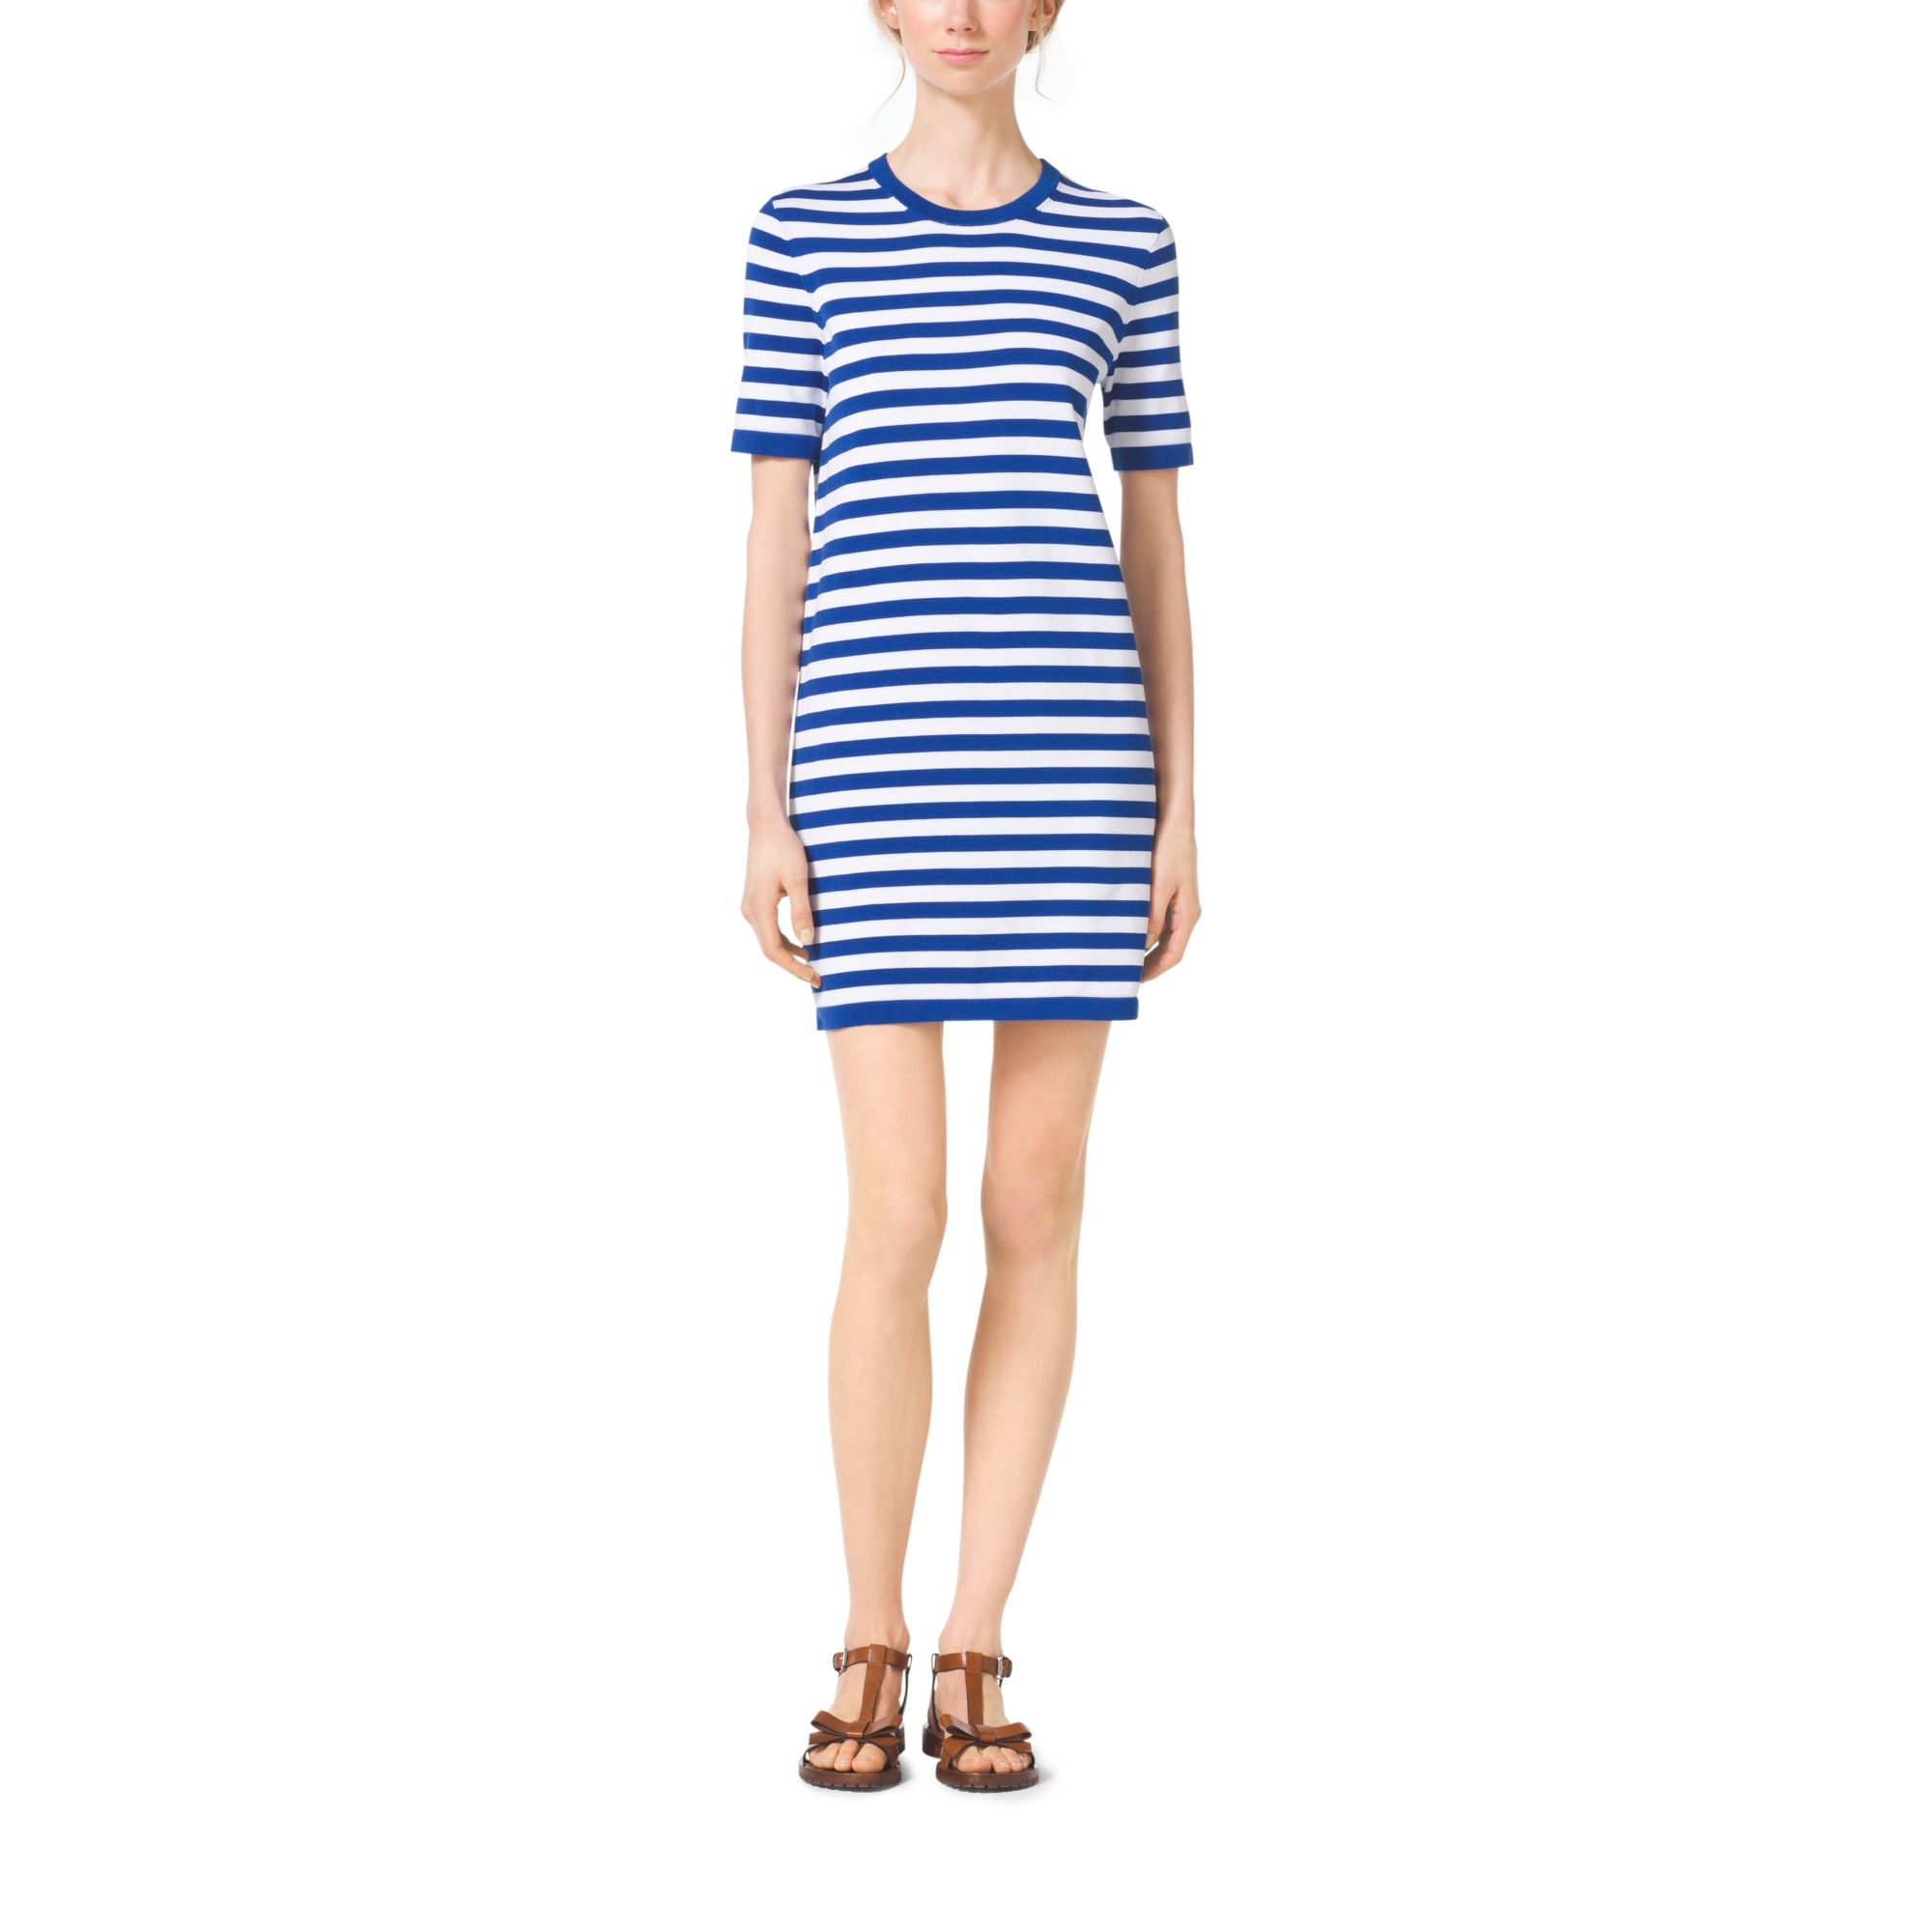 fdc04897463 Michael Kors Striped Compact-cotton T-shirt Dress in Blue - Lyst